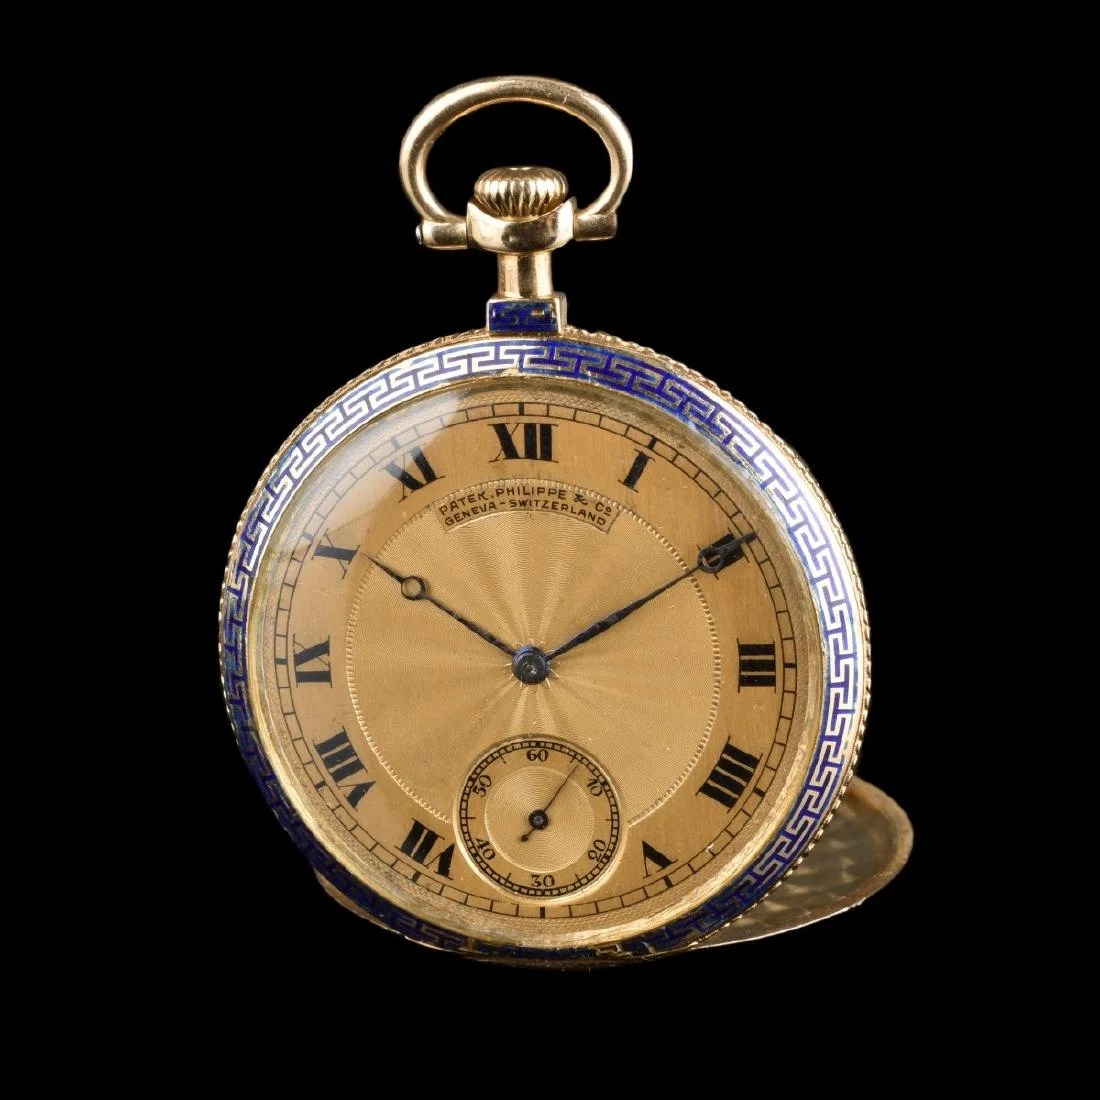 P Philippe Watch Patek Philippe 18k Pocket Watch On Liveauctioneers